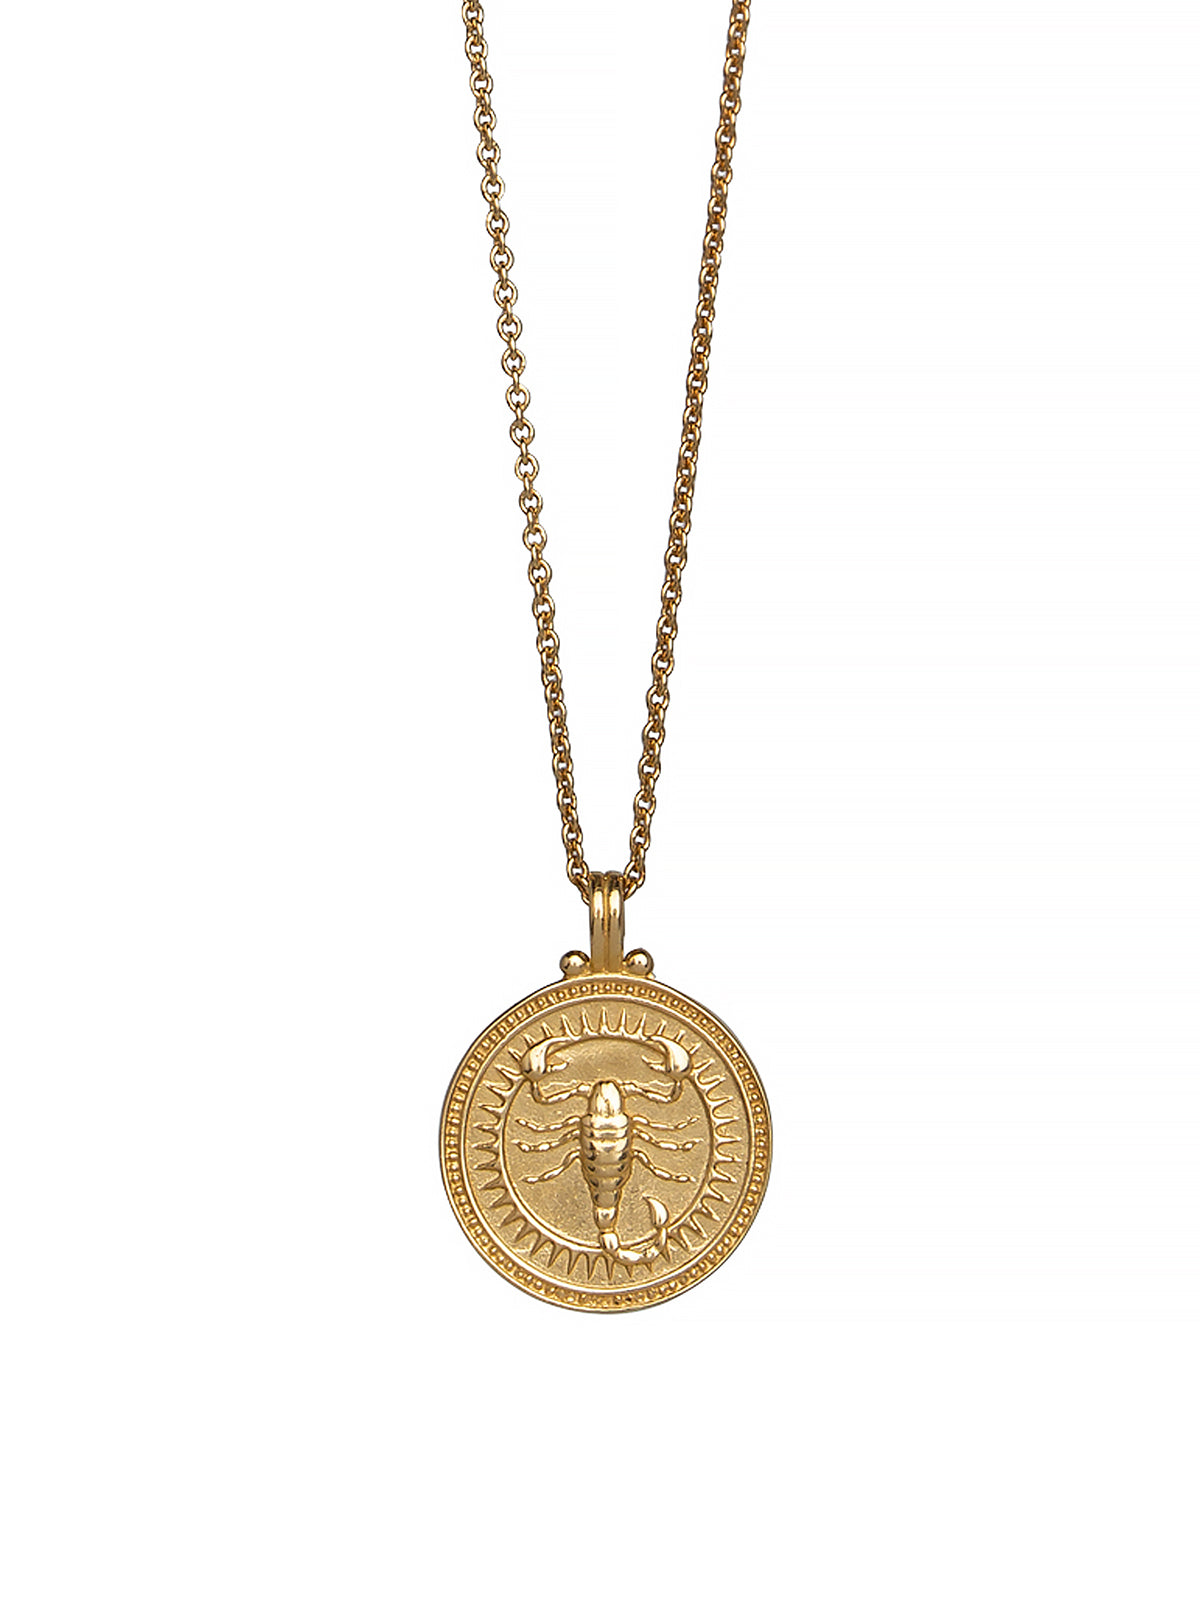 Scorpio Zodiac Horoscope Necklace Gender Neutral Gold Vermeil 蠍座 星座